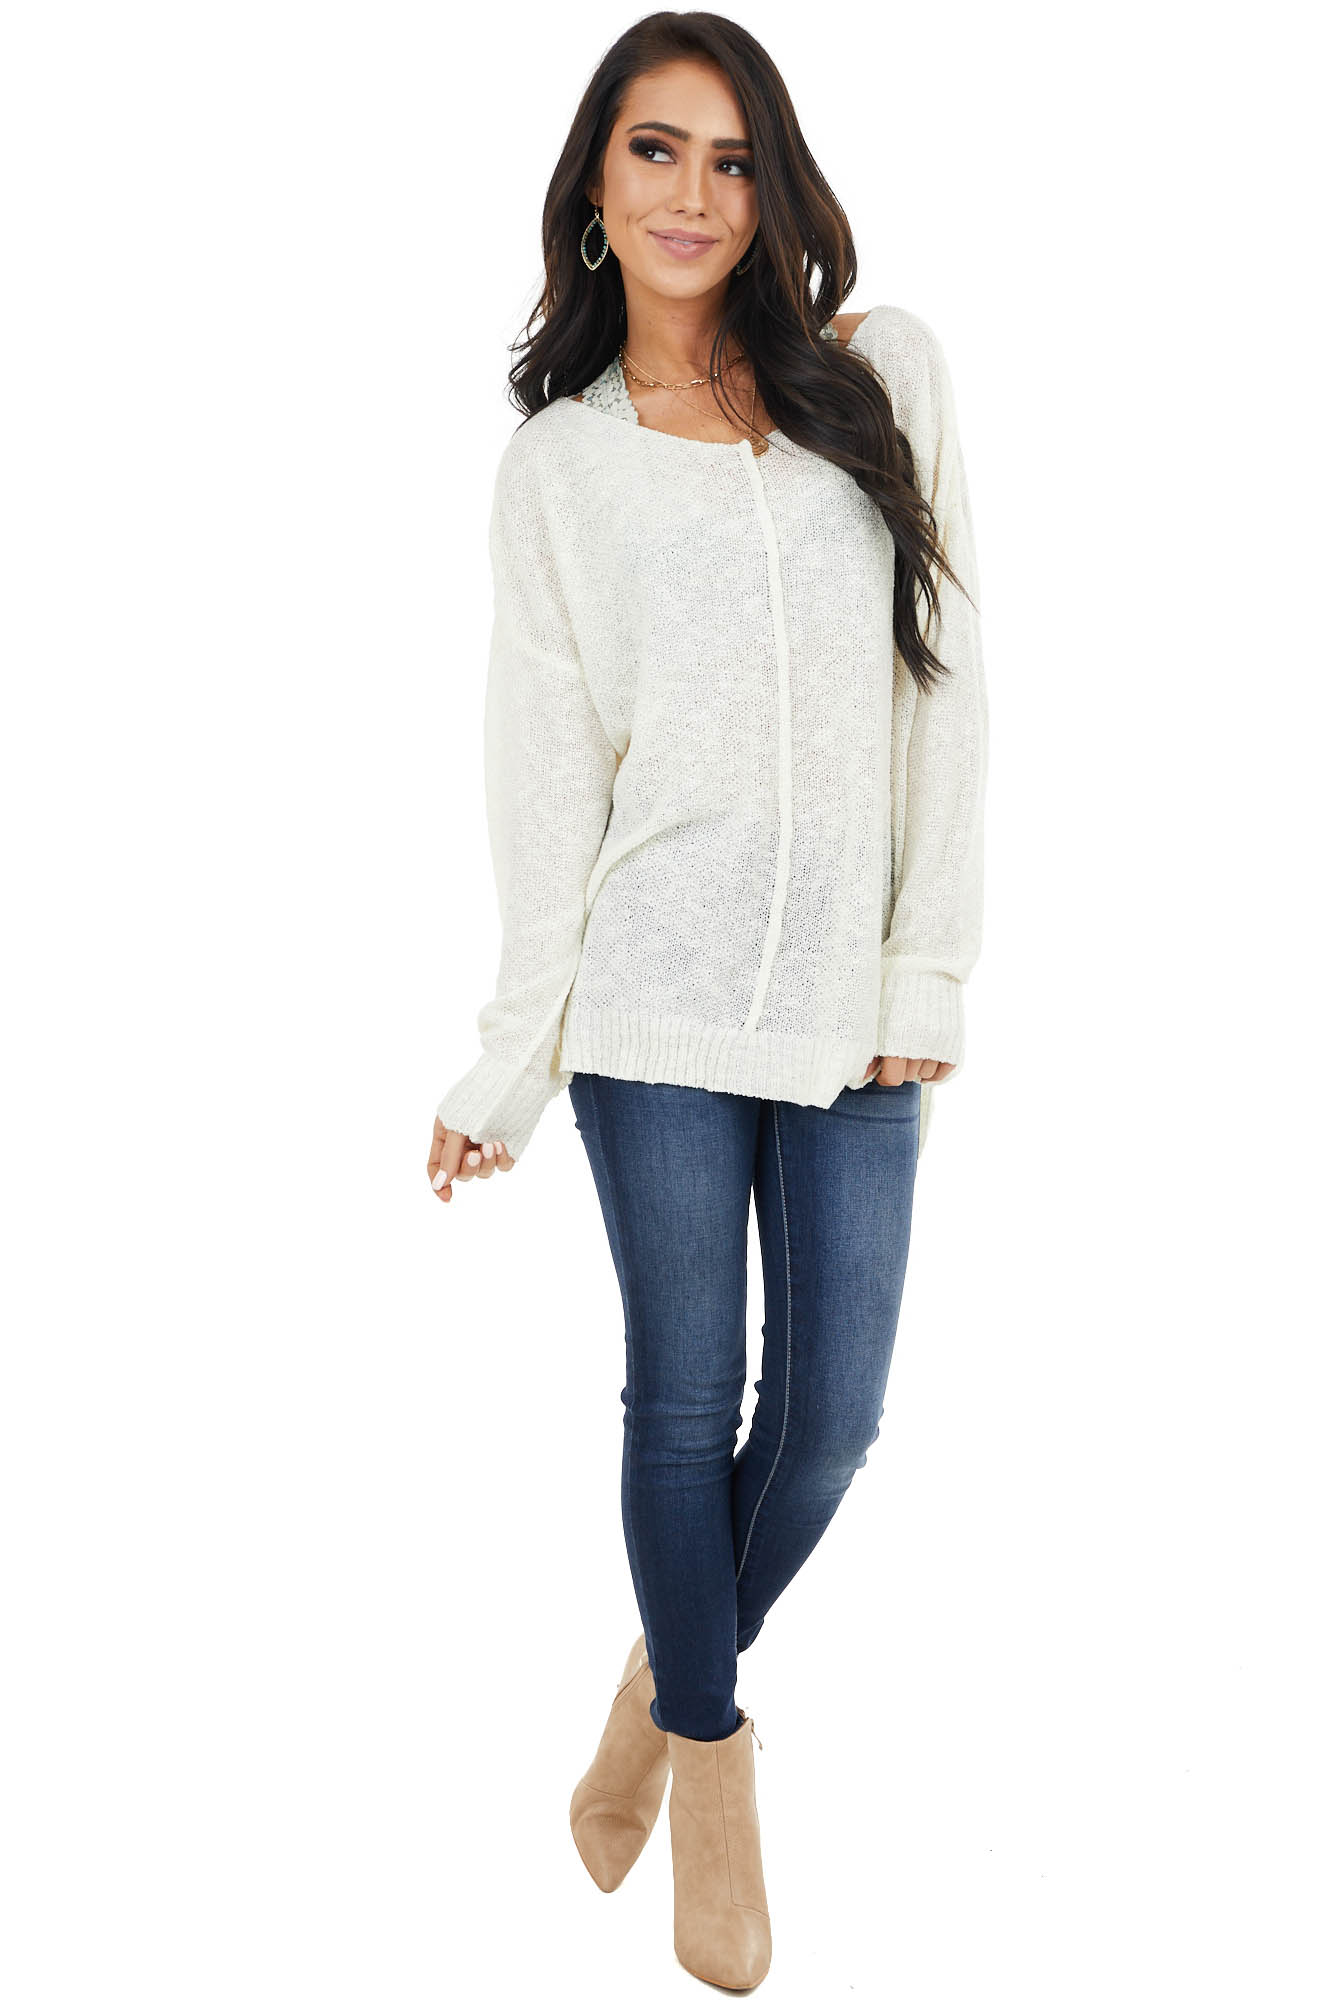 Ivory Light Sweater with Front and Back Seam Detail